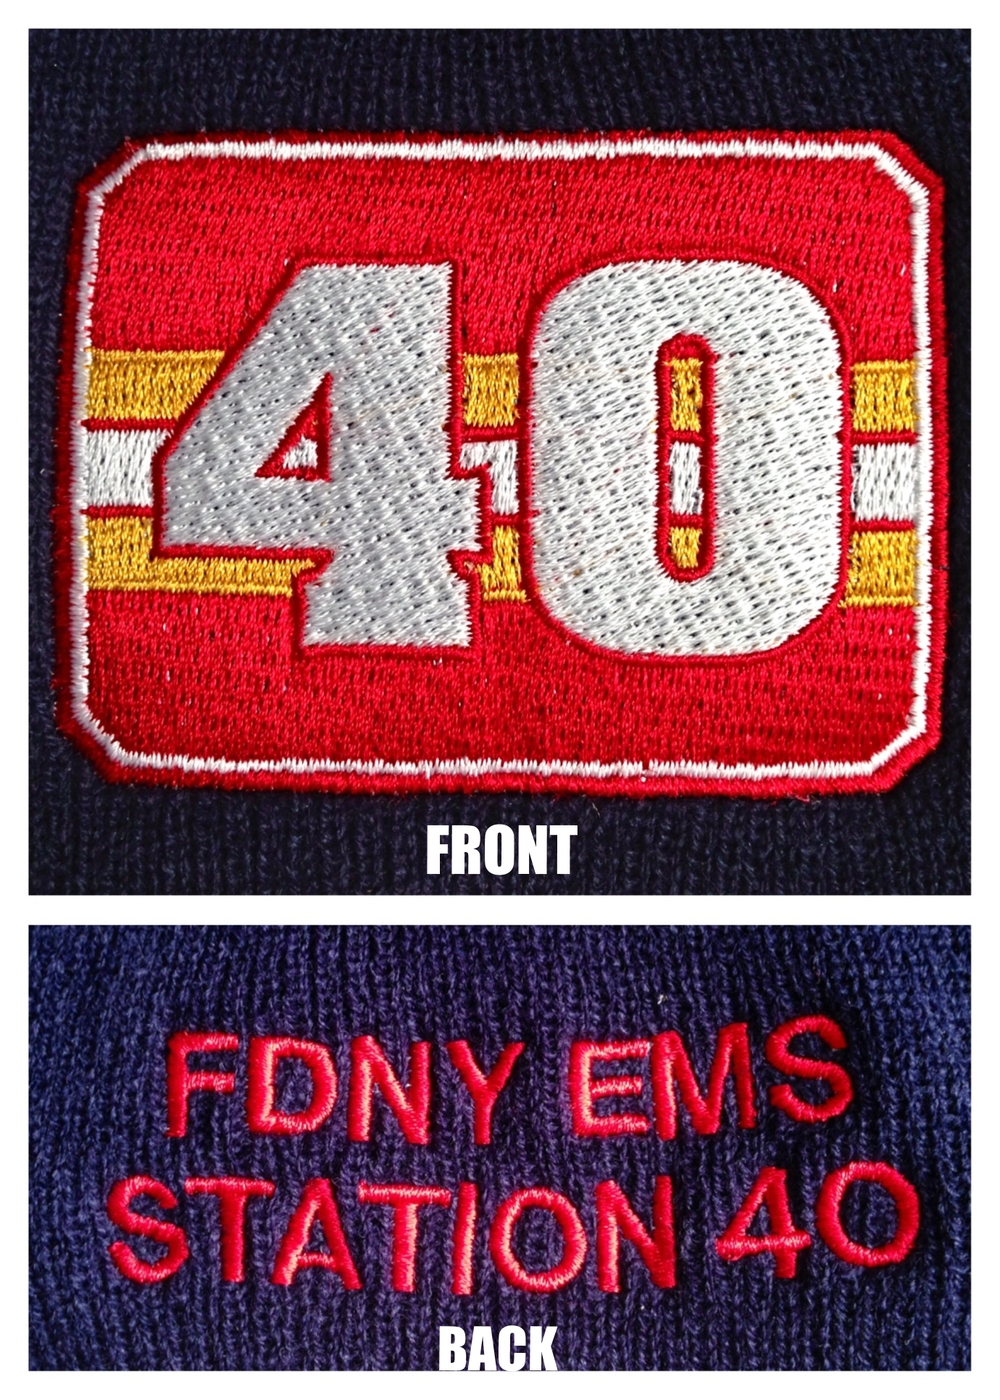 Custom Embroidered Beanies for FDNY EMS Station 40